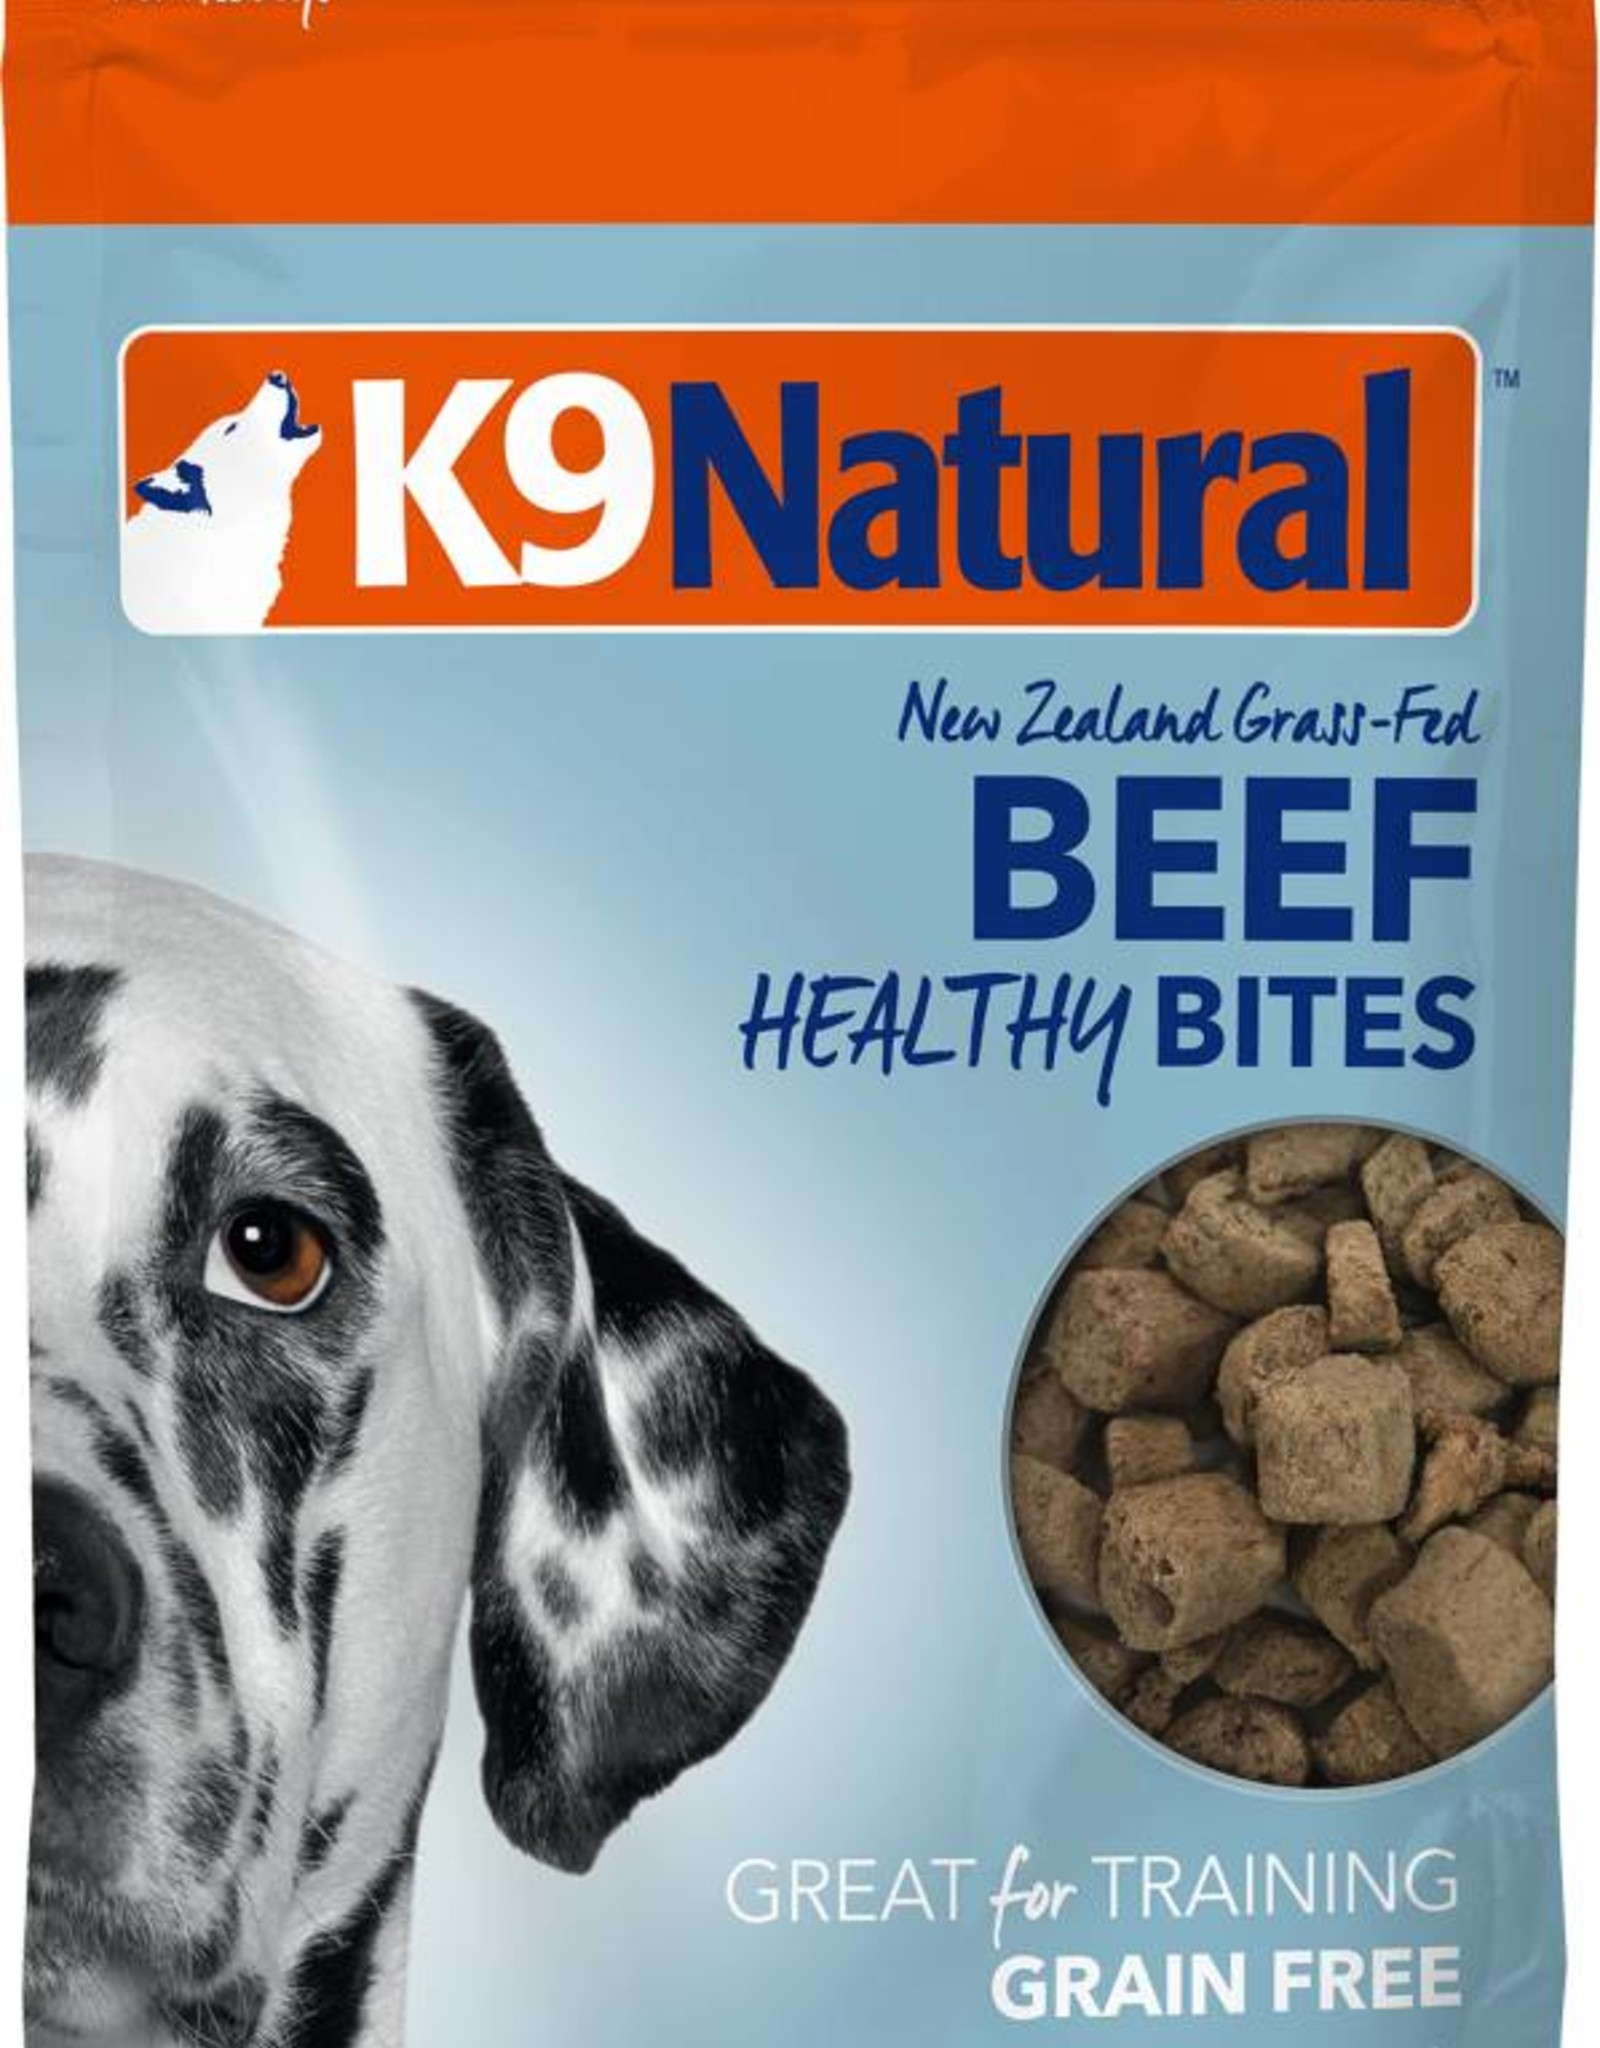 K9 Natural K9 Natural Beef Healthy Bites for Dogs